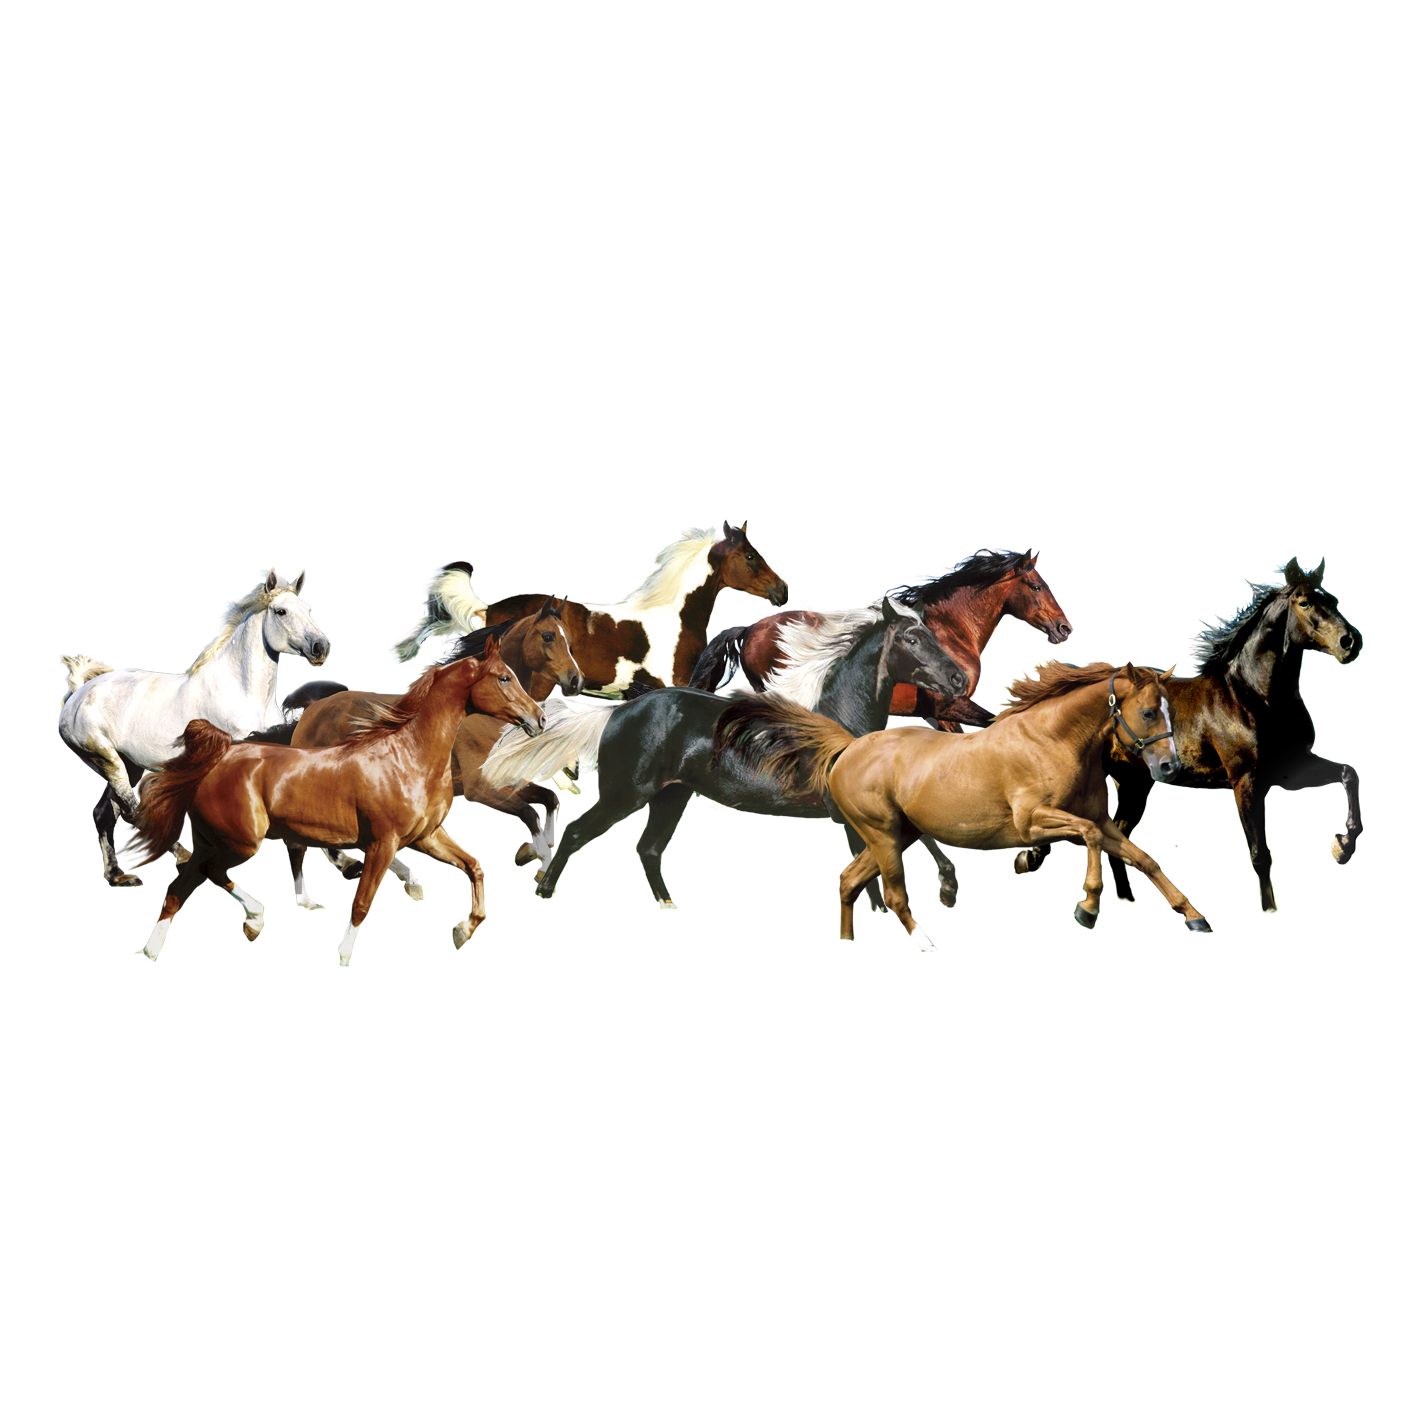 7 White Horse Images Horse Png Horse Clipart Transparent White Horse Images White Horse Horses